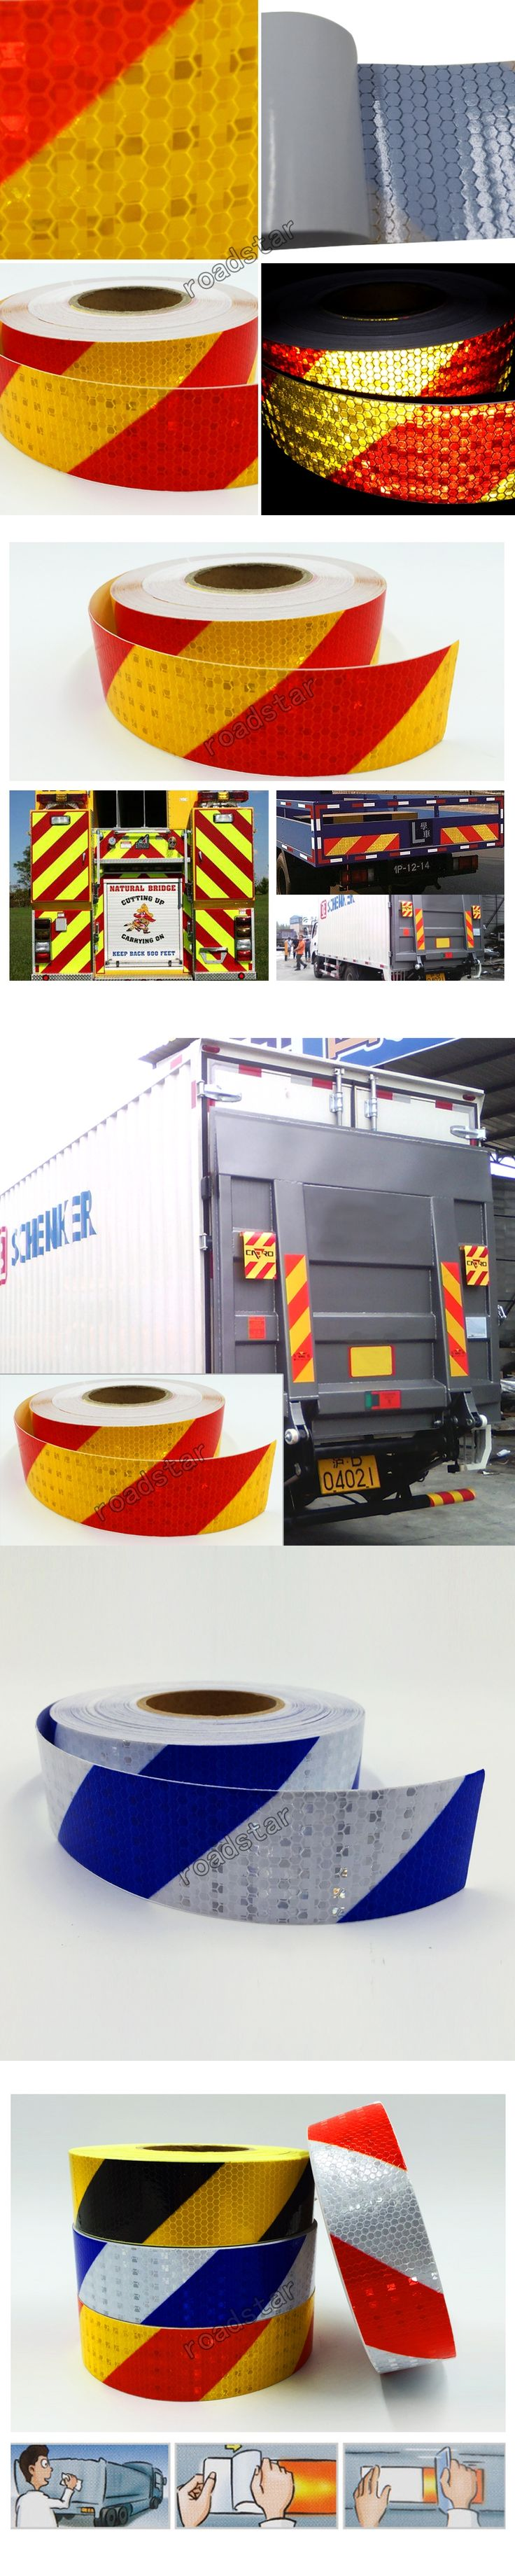 50mm X 50m Reflective Tape Stickers Auto Truck Pickup Safety Reflective Material Film Warning Tape Car Styling Decoration